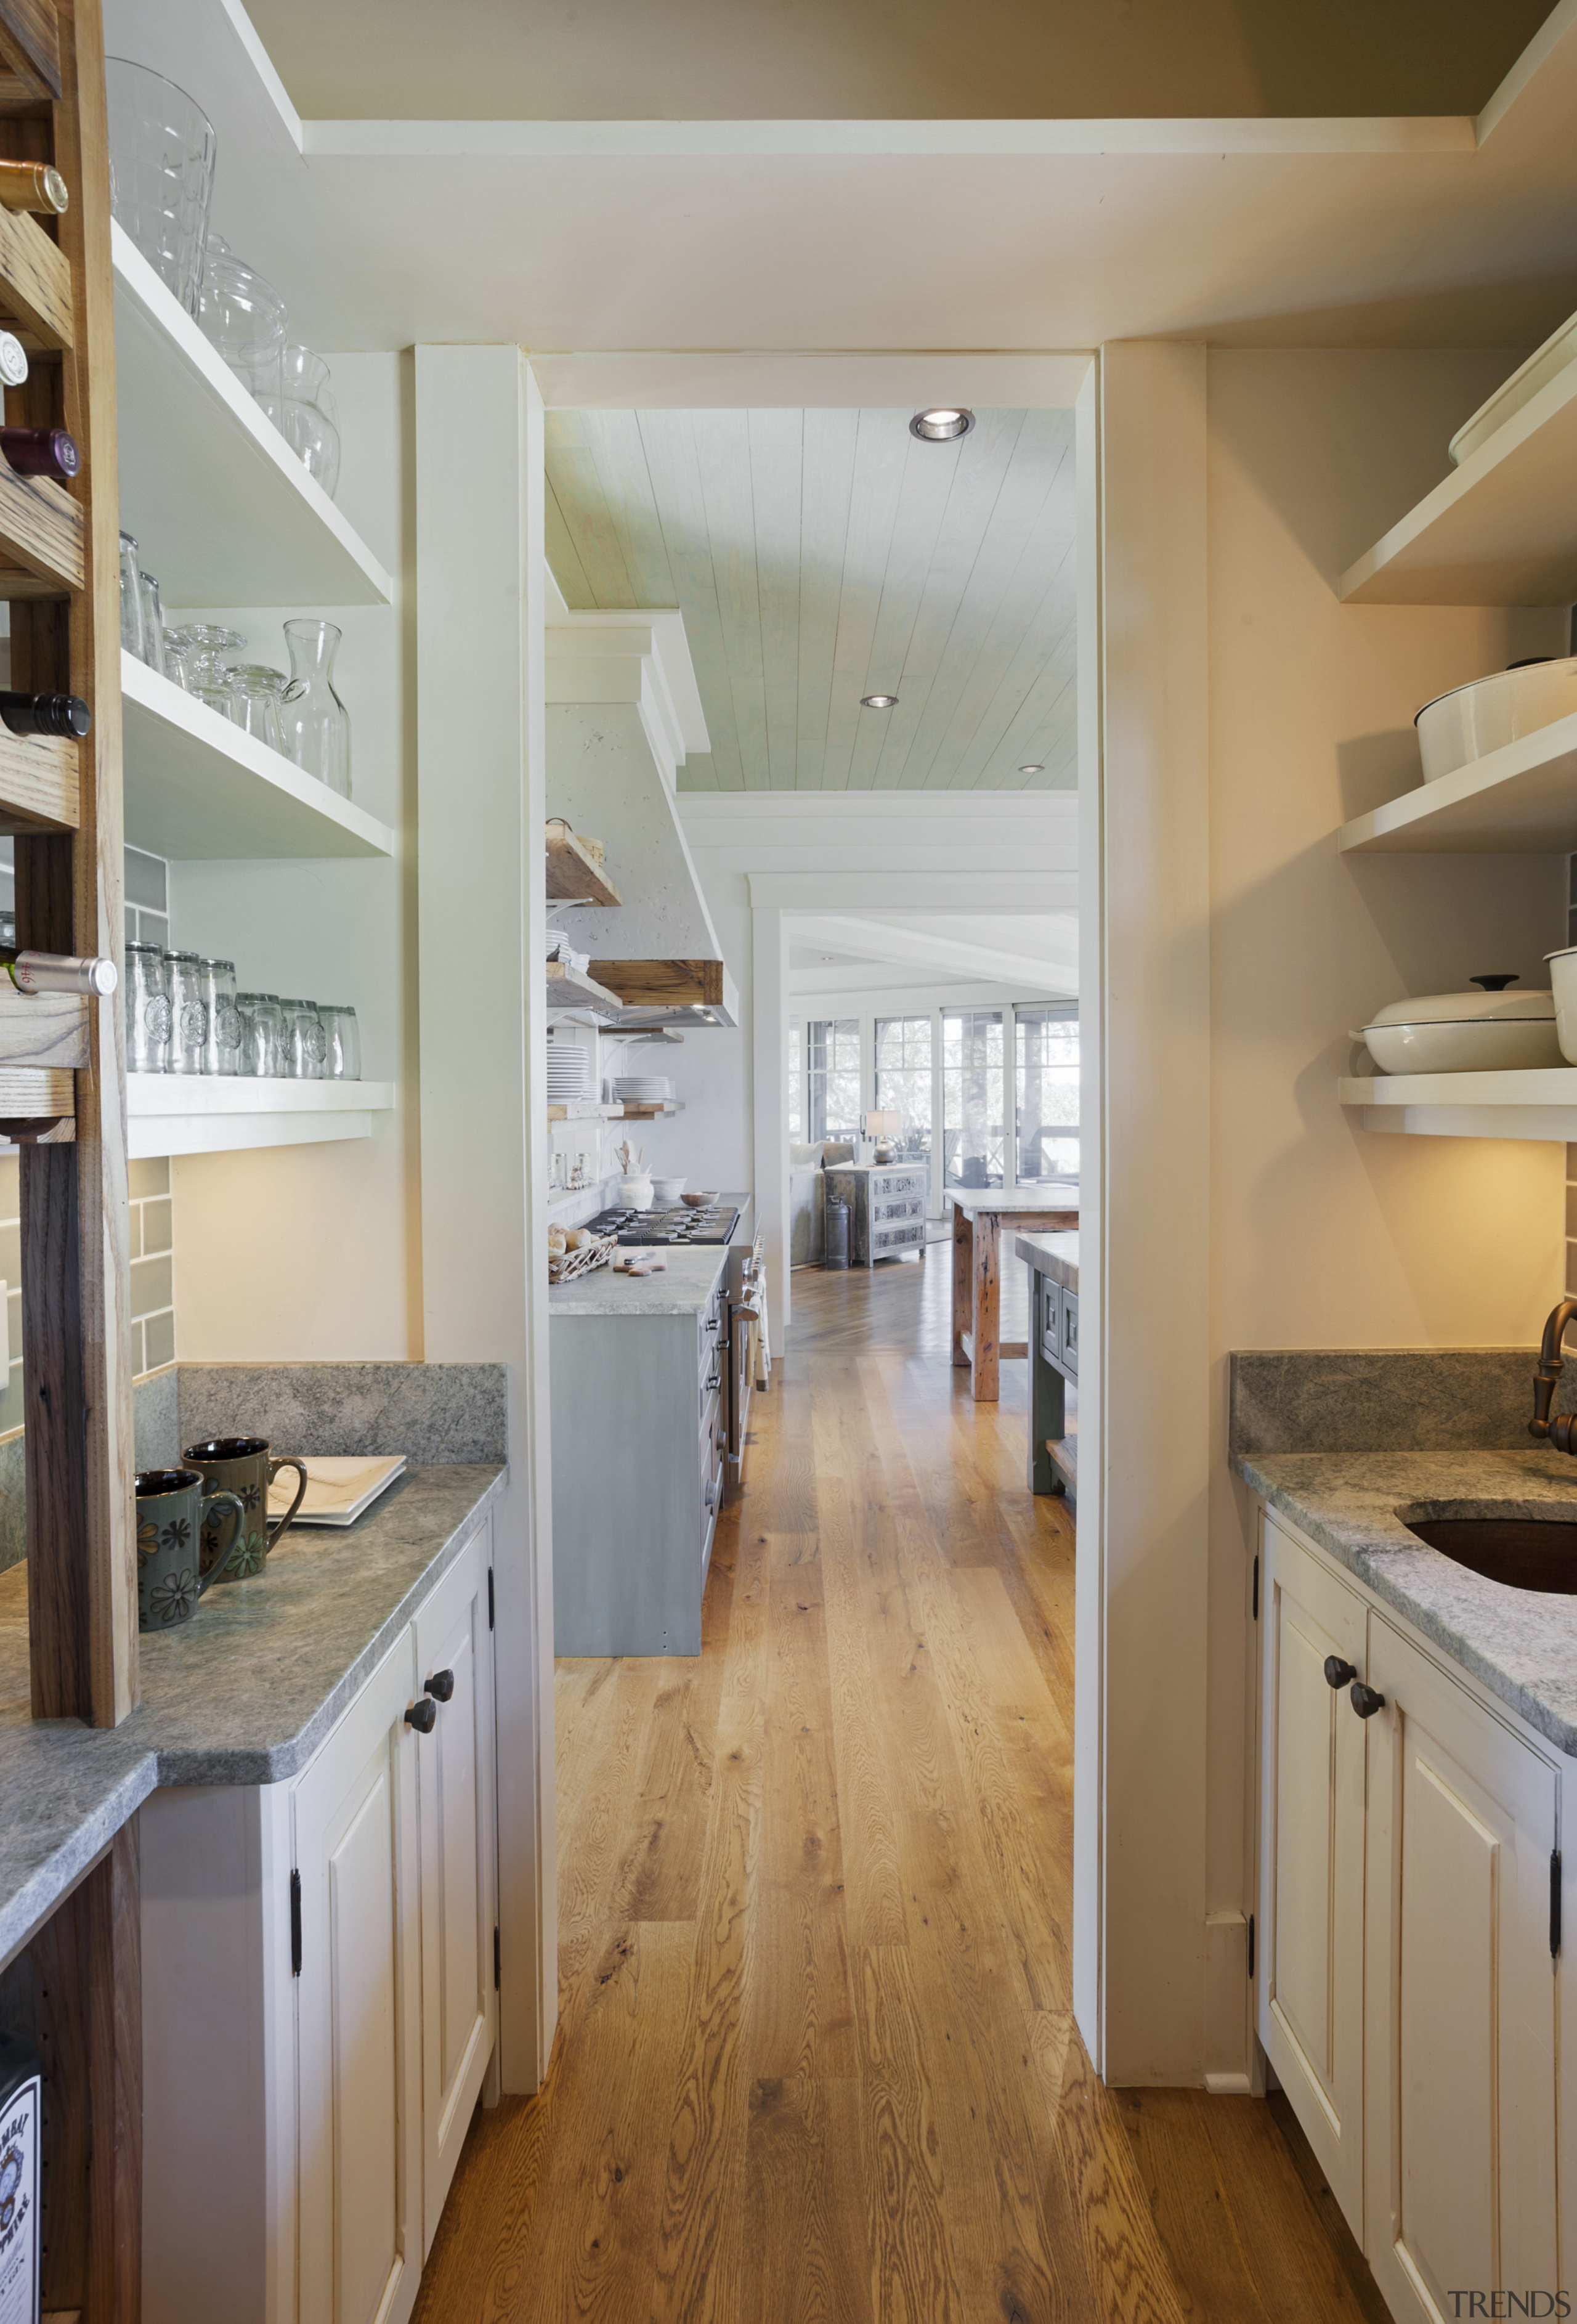 This large scullery provides penty of storage. The cabinetry, ceiling, countertop, cuisine classique, floor, flooring, hardwood, home, interior design, kitchen, real estate, room, wood flooring, gray, brown